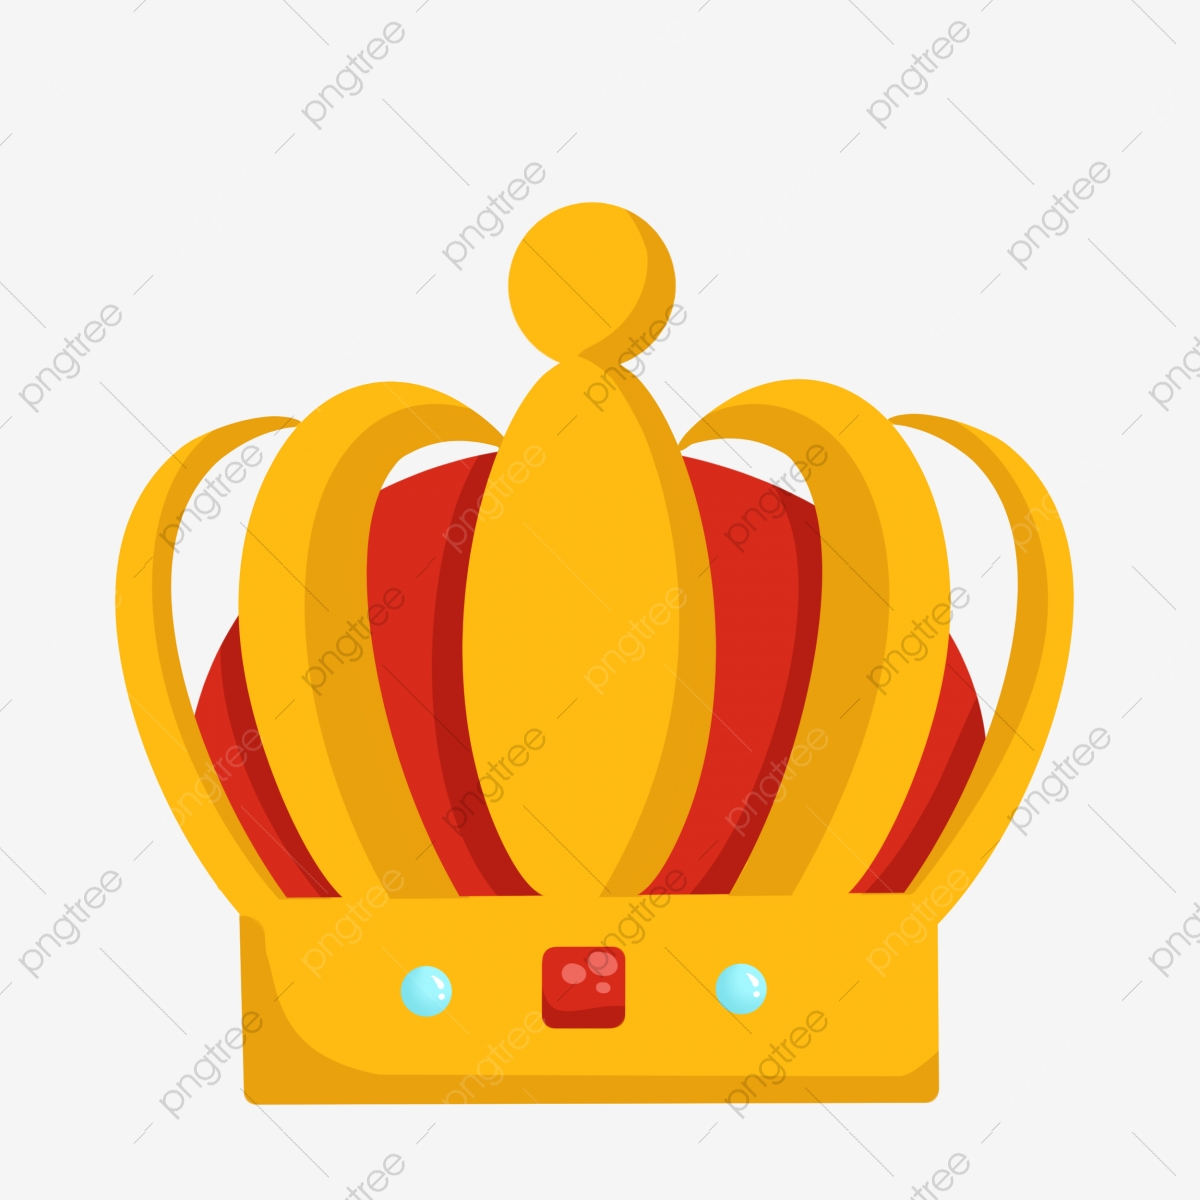 Prince Crown Png Images Vector And Psd Files Free Download On Pngtree 1000 prince crown cartoon free vectors on ai, svg, eps or cdr. https pngtree com freepng hand drawn prince crown illustration 4502154 html